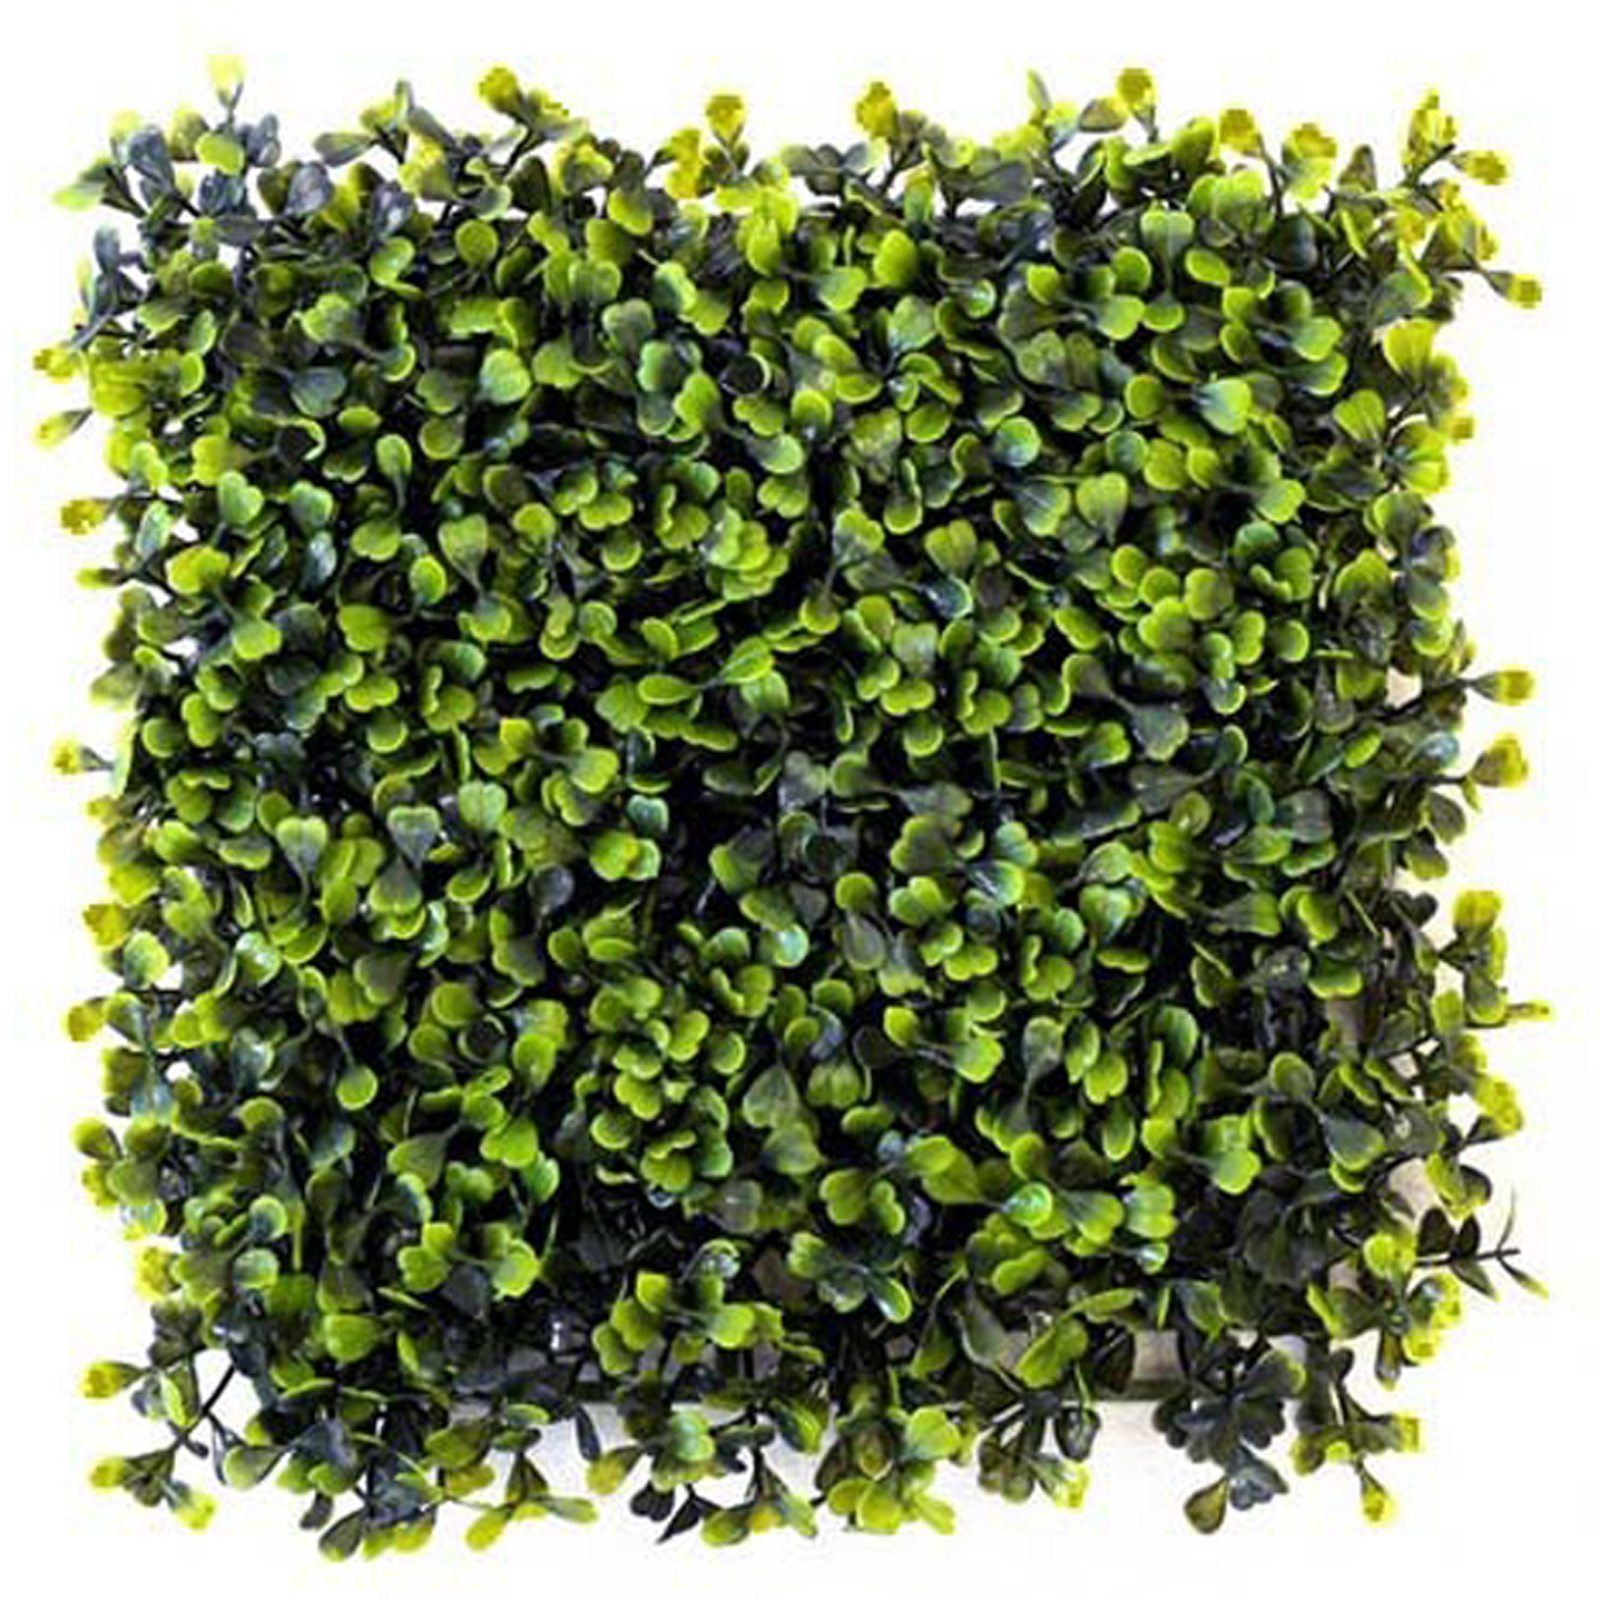 Boxwood Green Wall by Bonham & Bonham